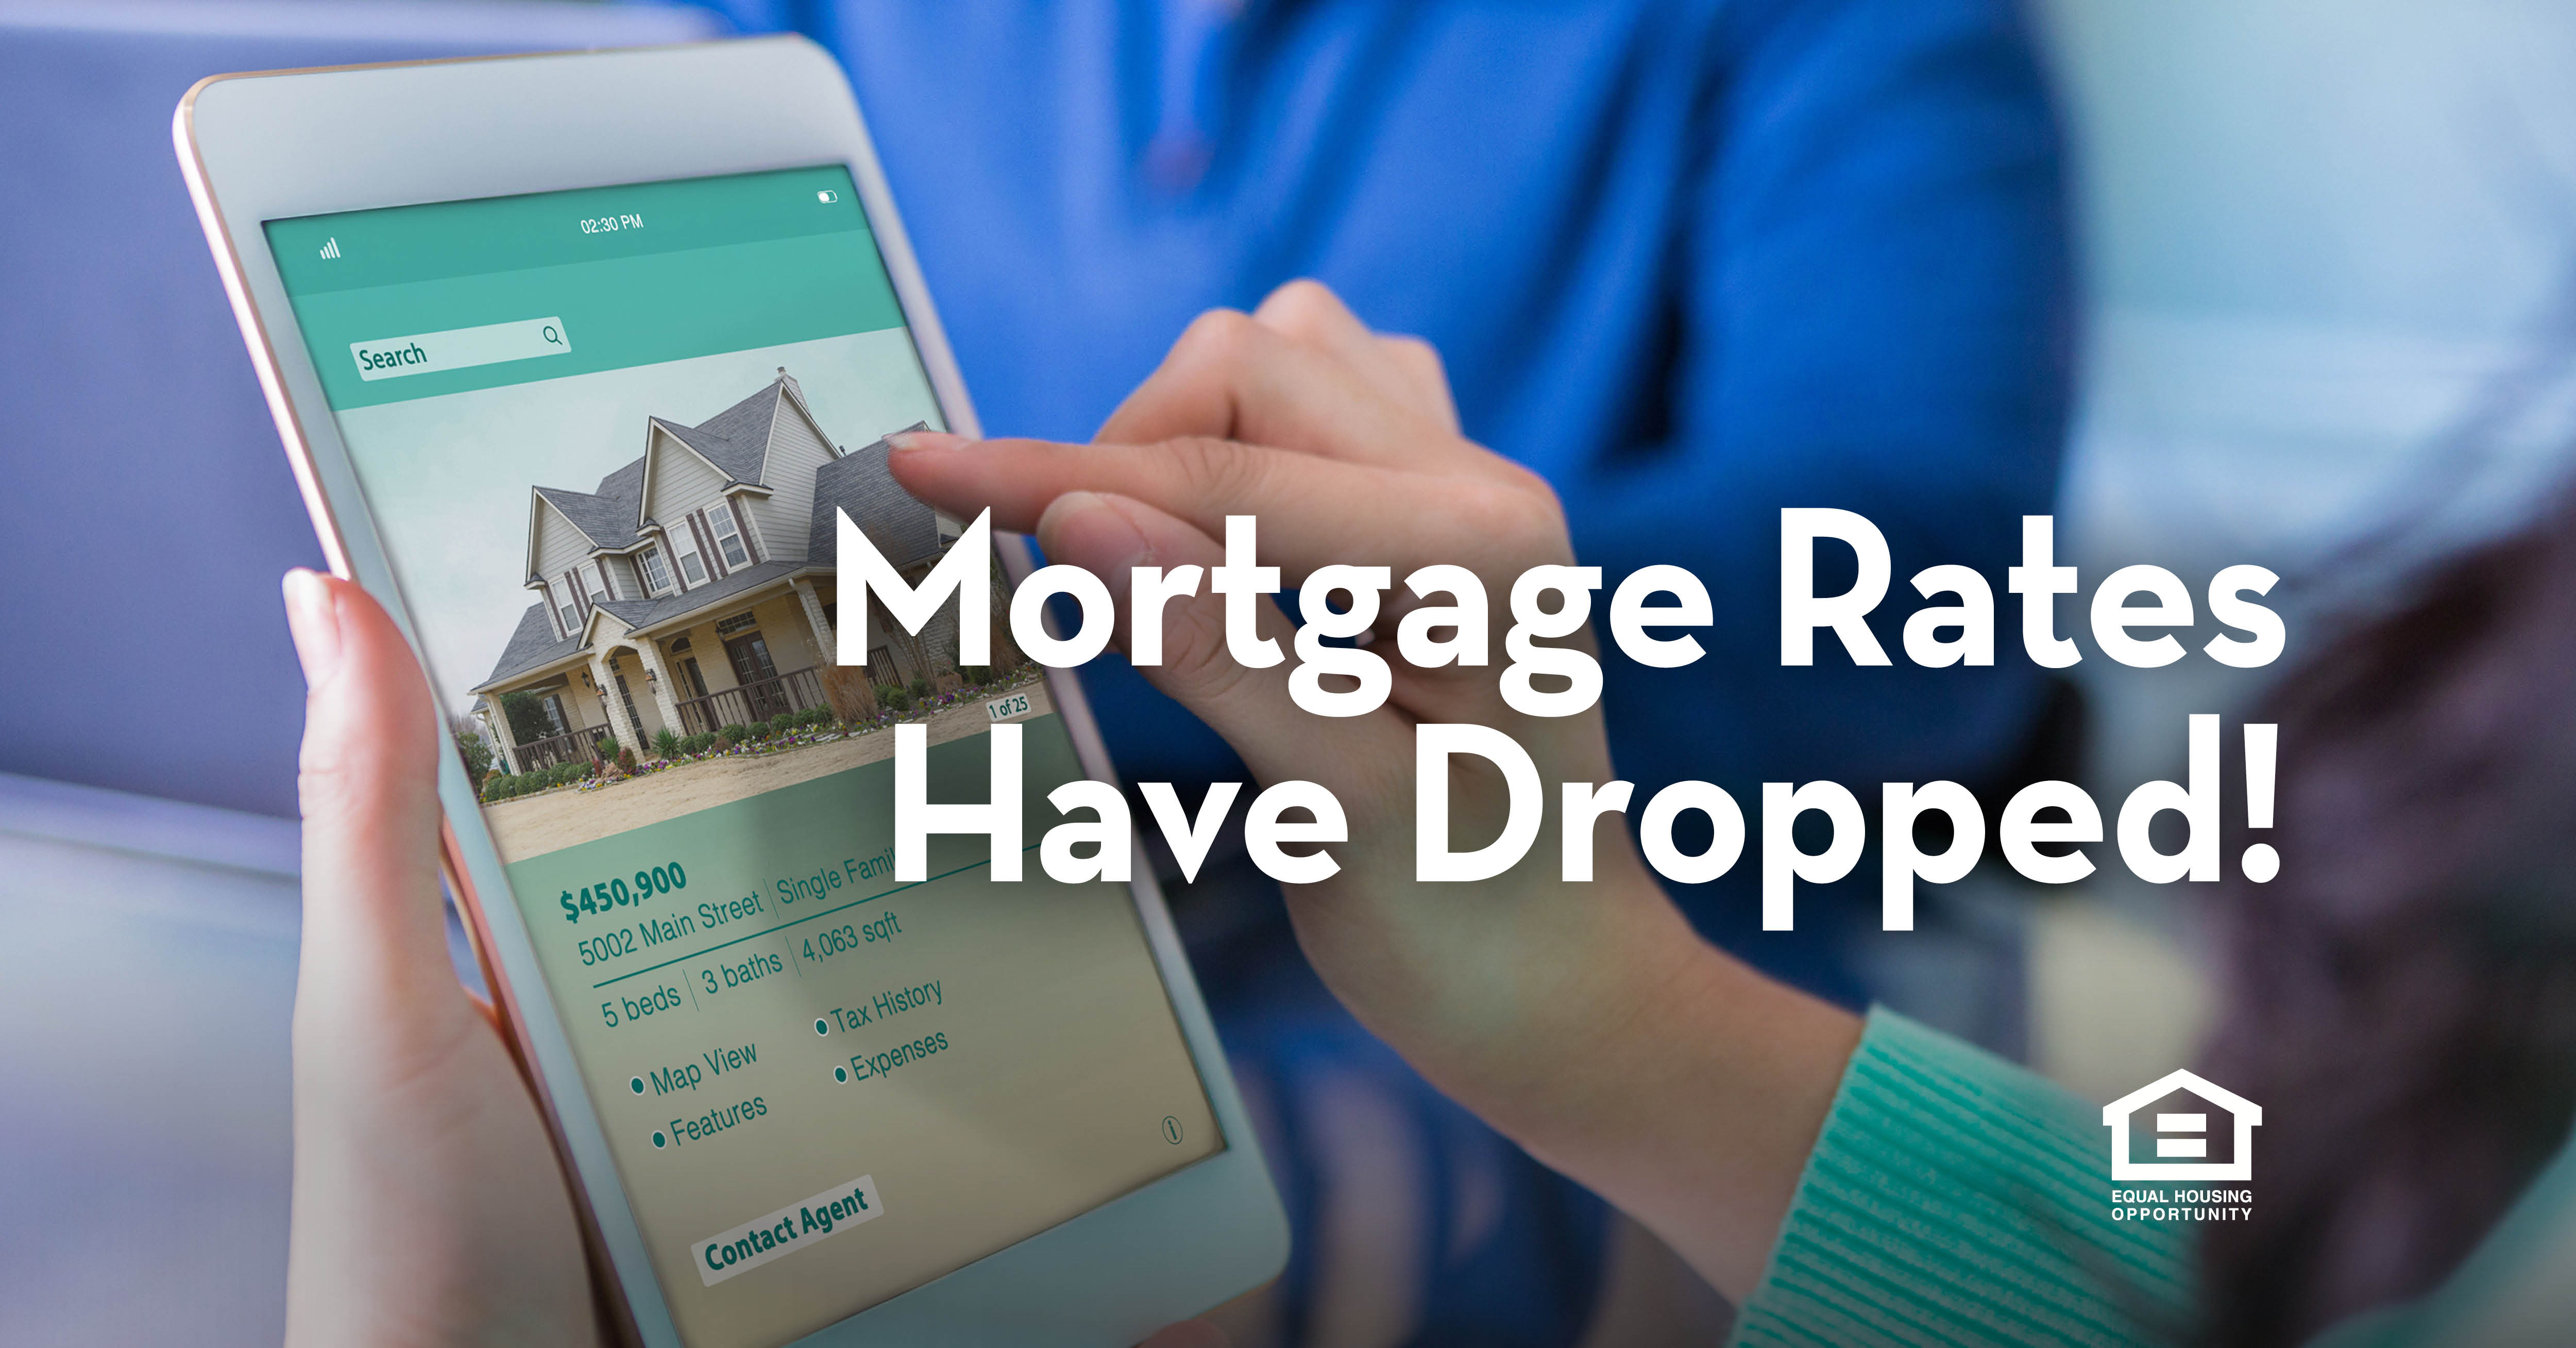 Mortgage Rates Have Dropped!